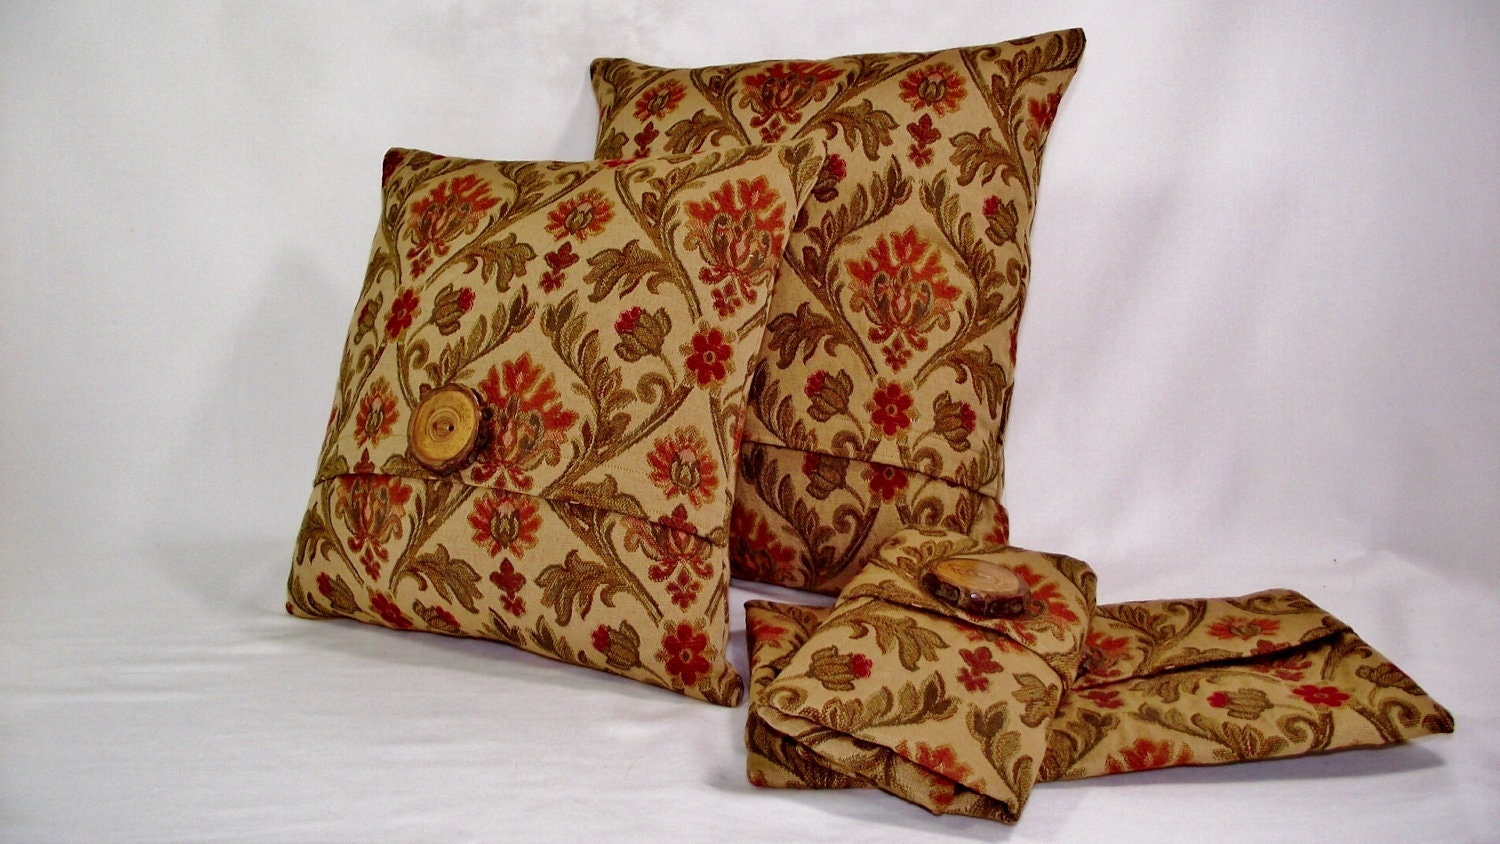 Pillow Cover in Tan Textured Fabric with Burnt Orange, Rust Red and Olive Tones - whiteoakroom